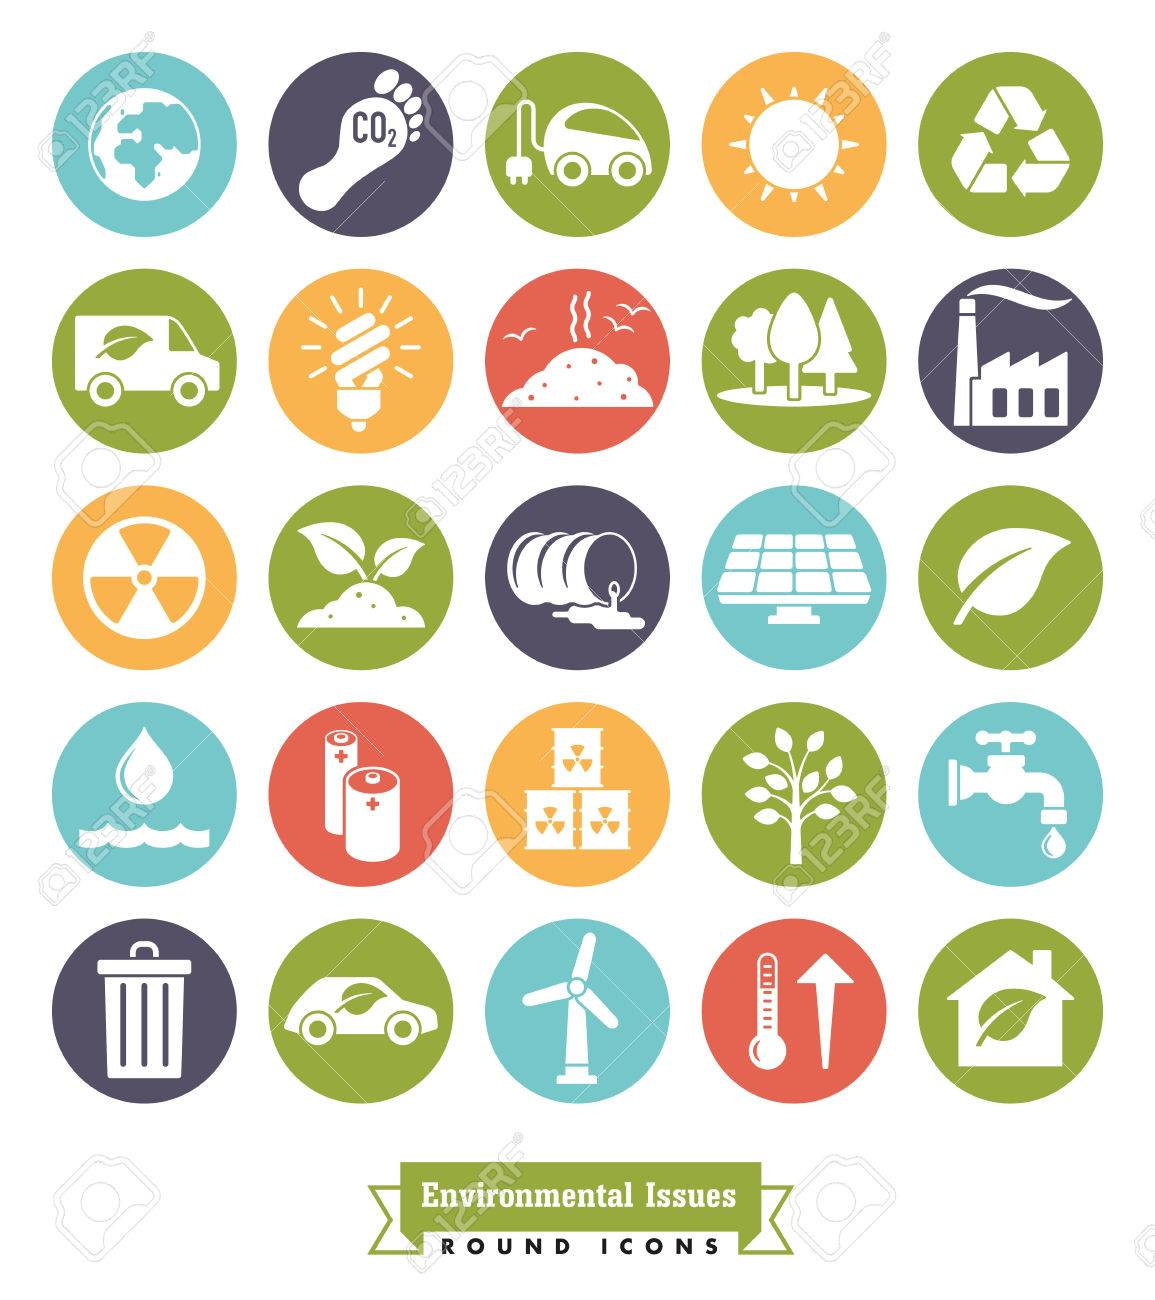 Collection of Environment and Climate related round color vector icons - 70945381